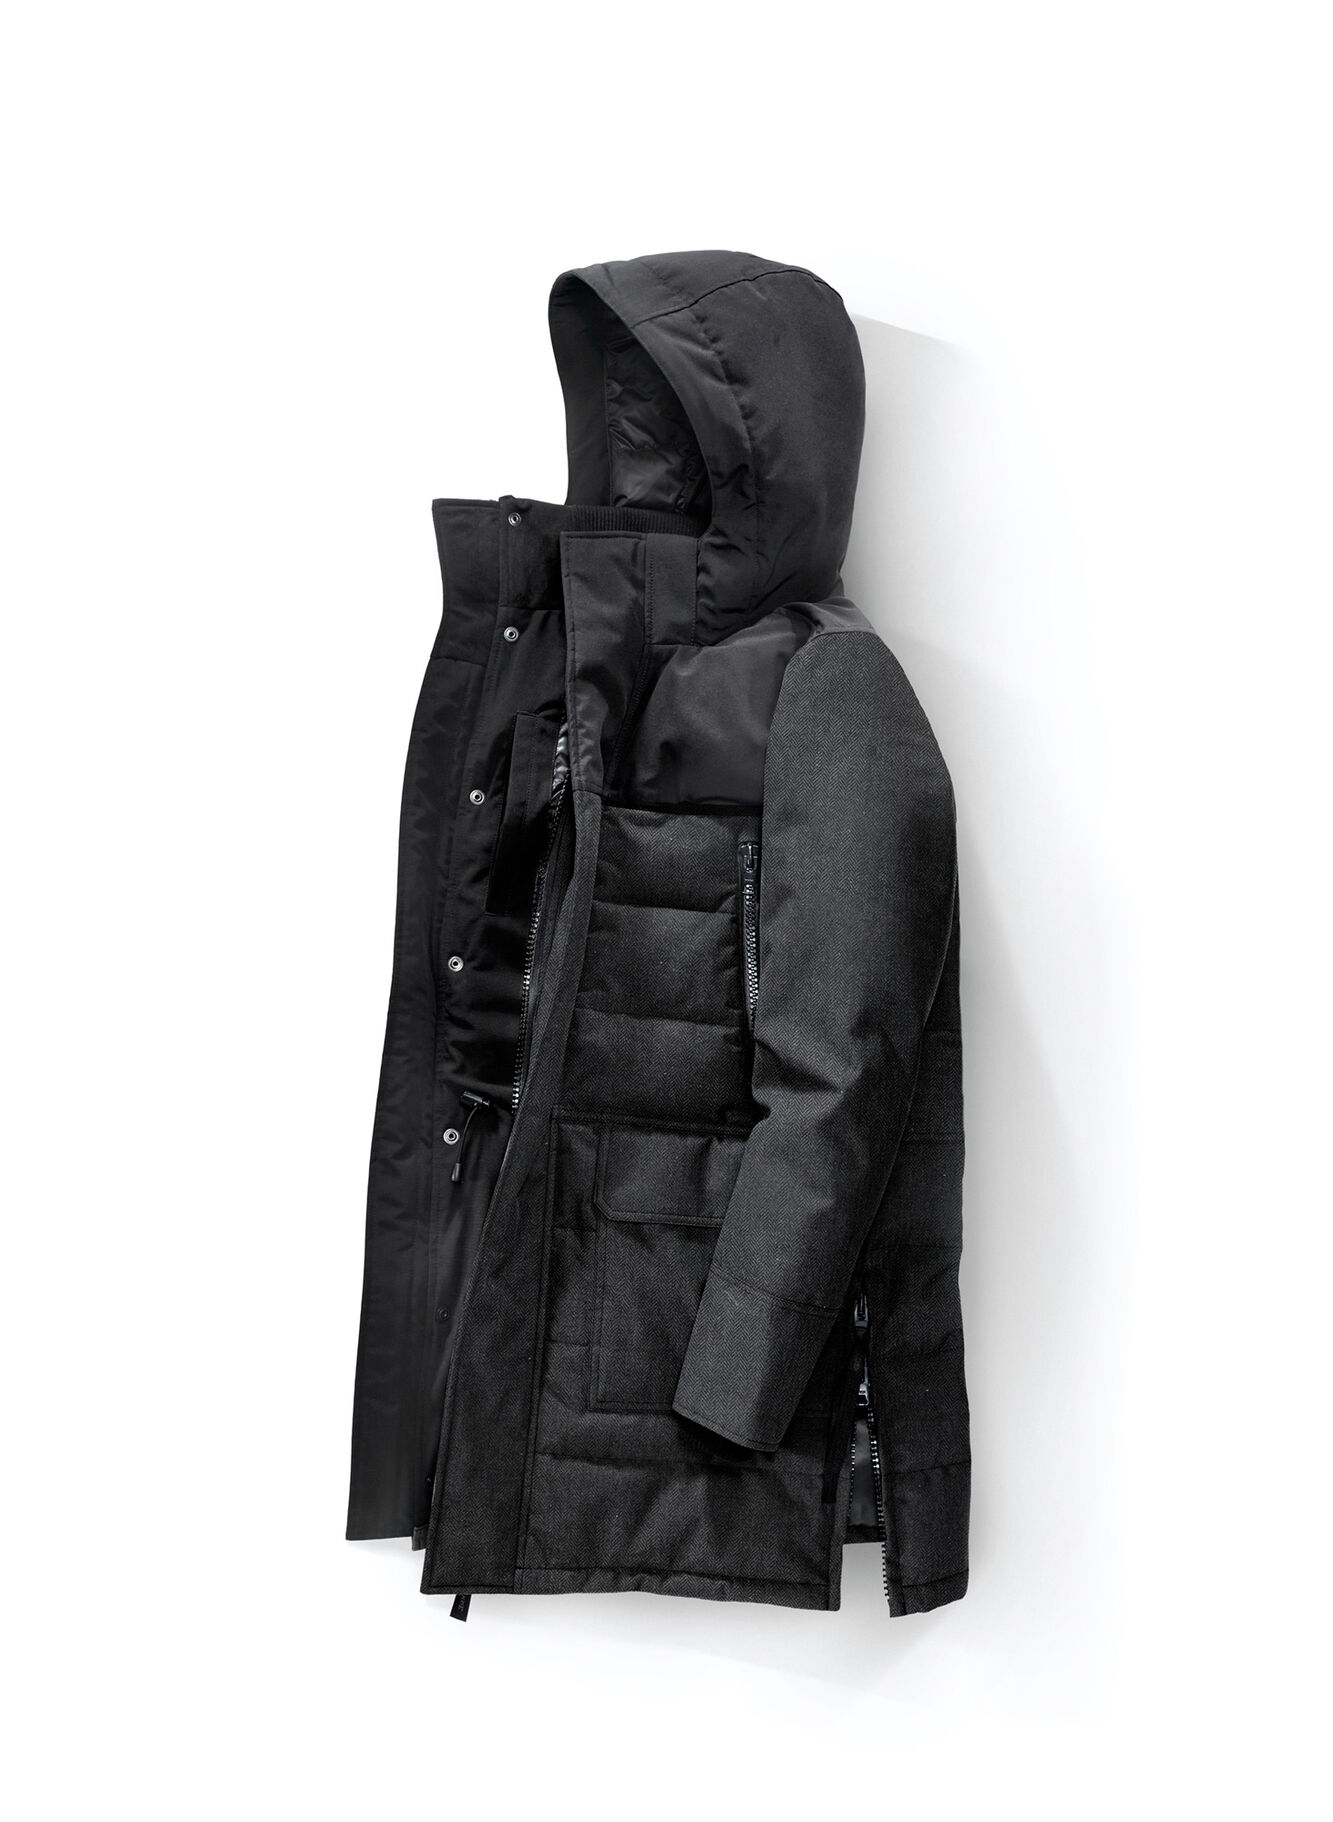 Canada Goose toronto online authentic - Men's Parkas | Expedition | Mountaineer | Canada Goose?